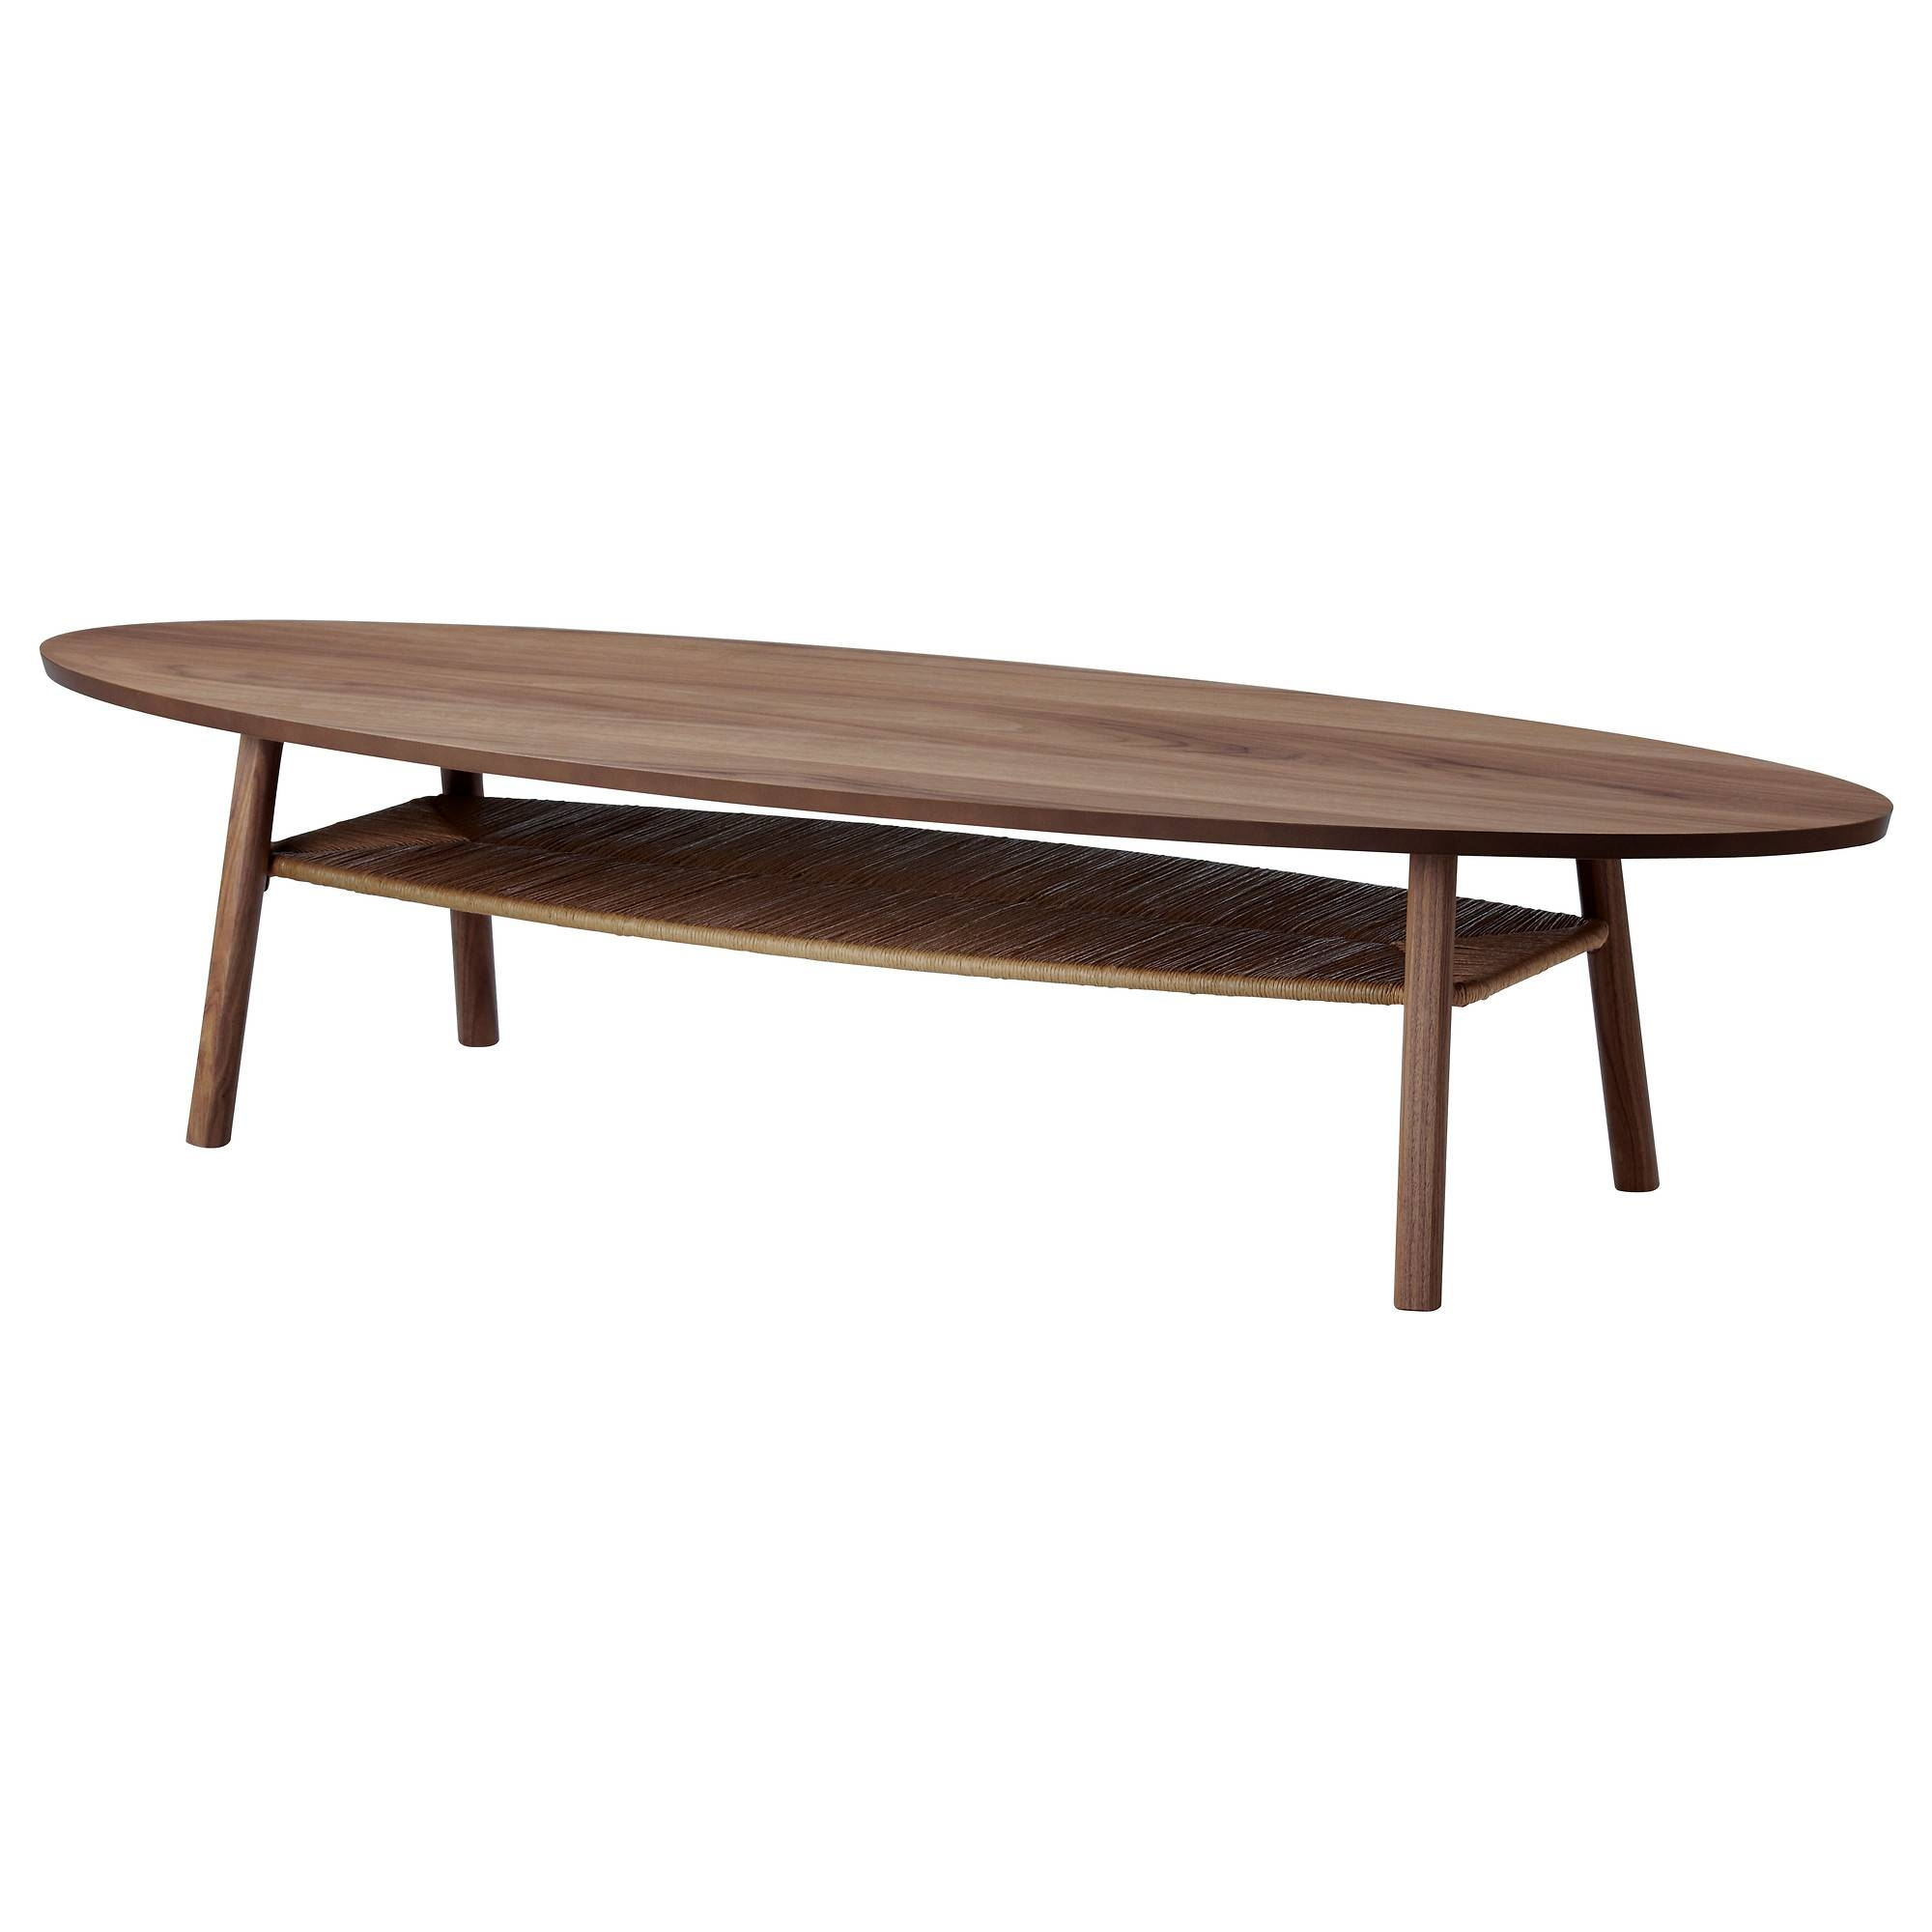 Coffee Tables & Console Tables - Ikea pertaining to Square Pine Coffee Tables (Image 8 of 30)